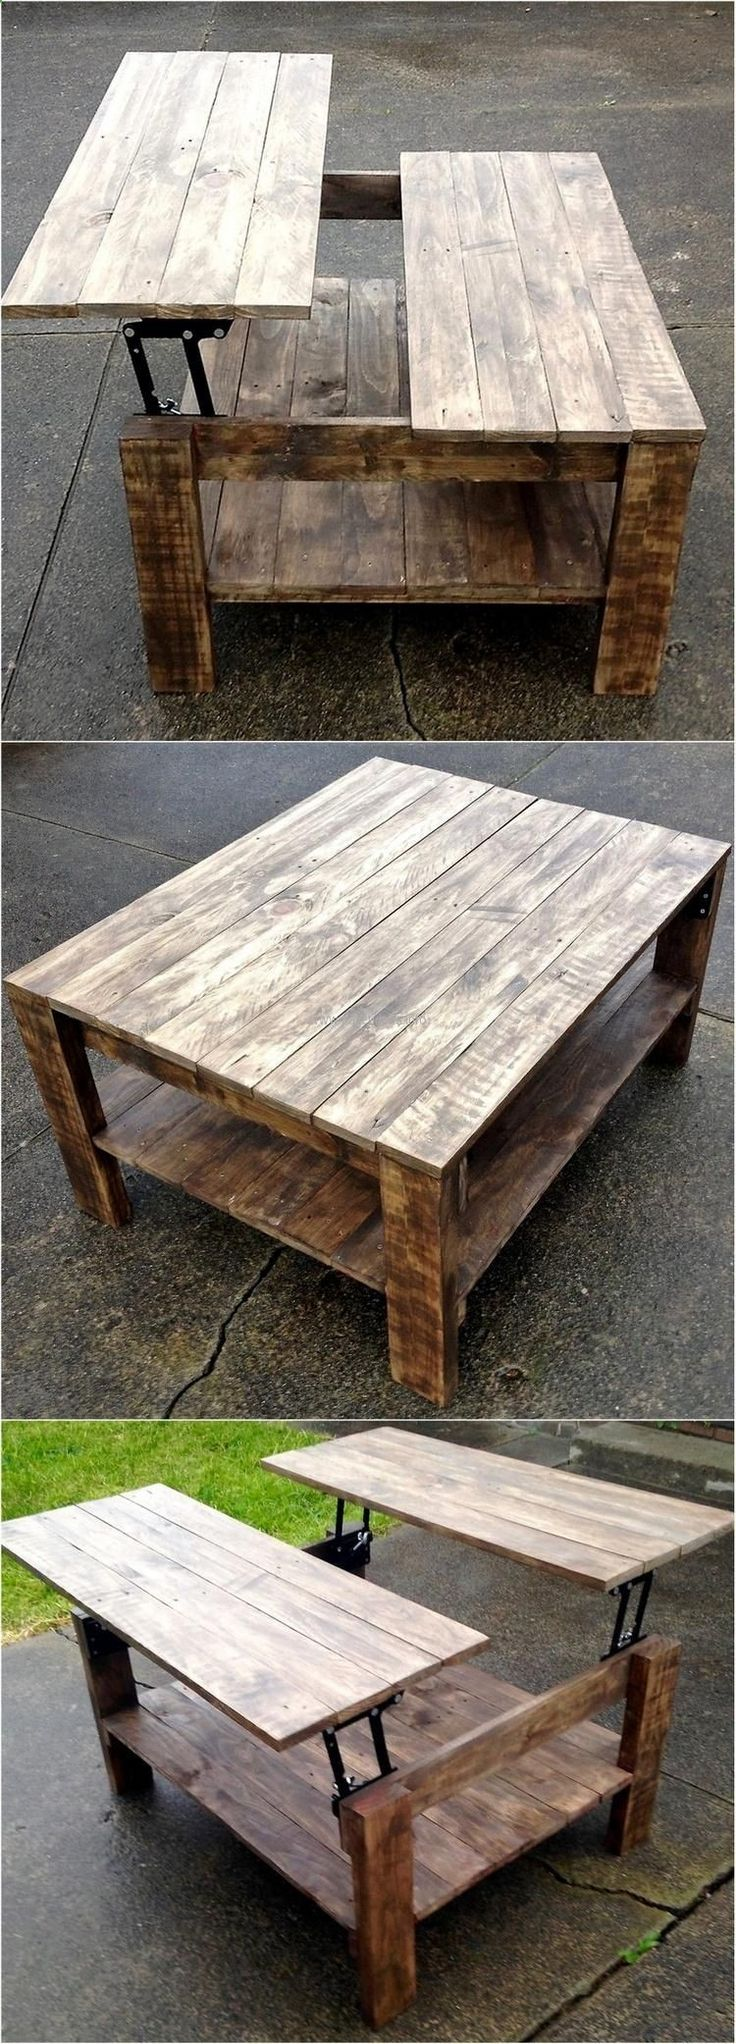 Best 25+ 2x4 furniture ideas on Pinterest   Woodworking projects ...